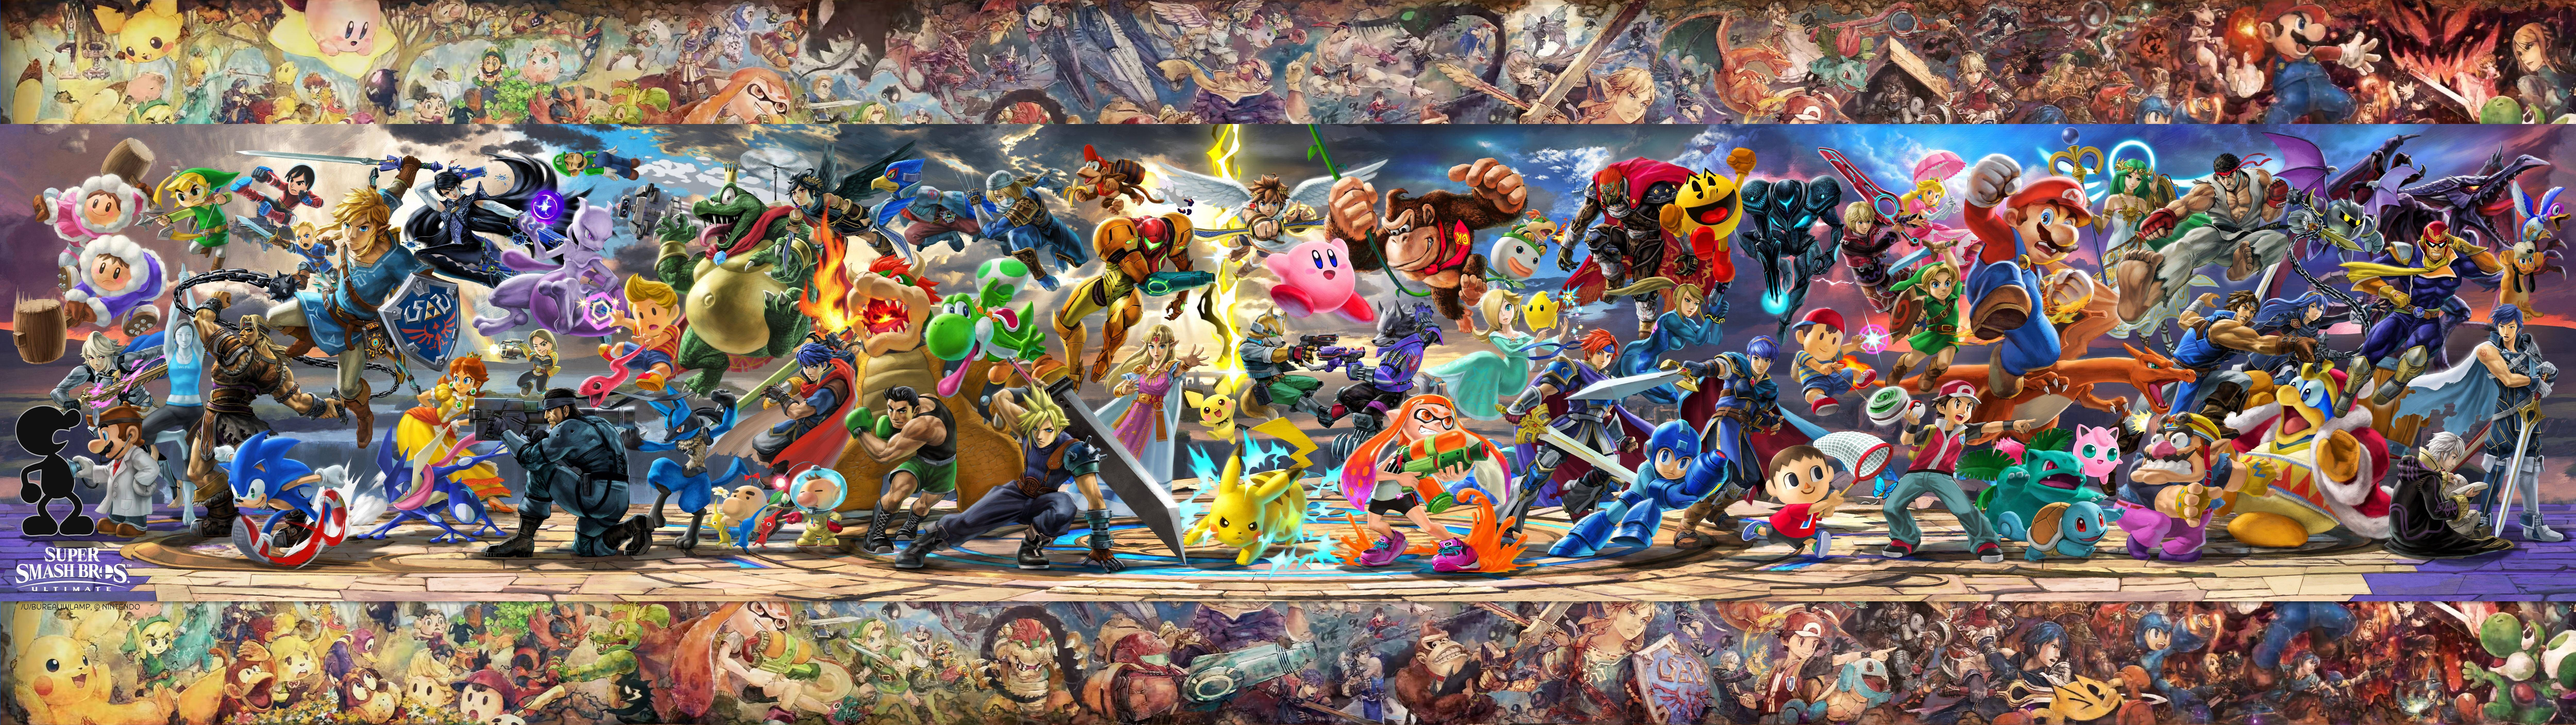 Super Smash Bros Wallpapers Top Free Super Smash Bros